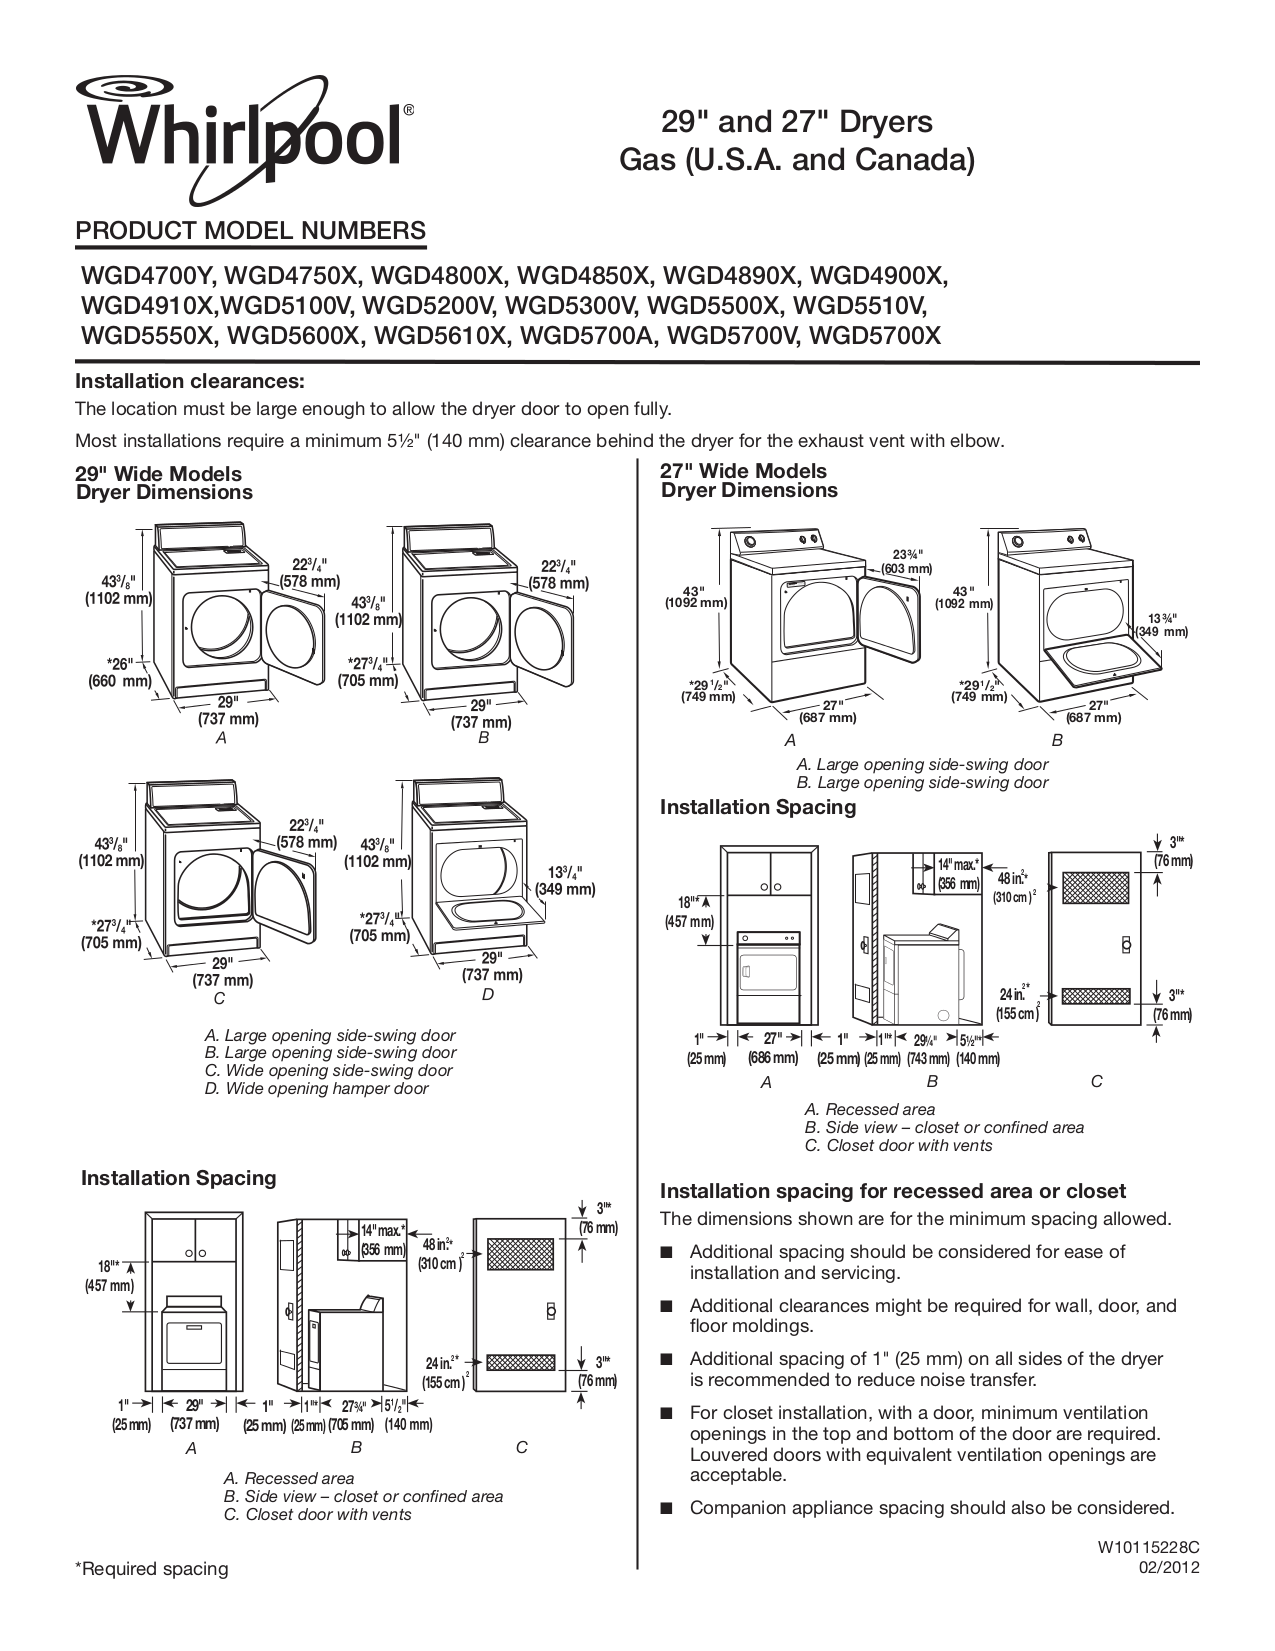 whirlpool dryer repair manual pdf